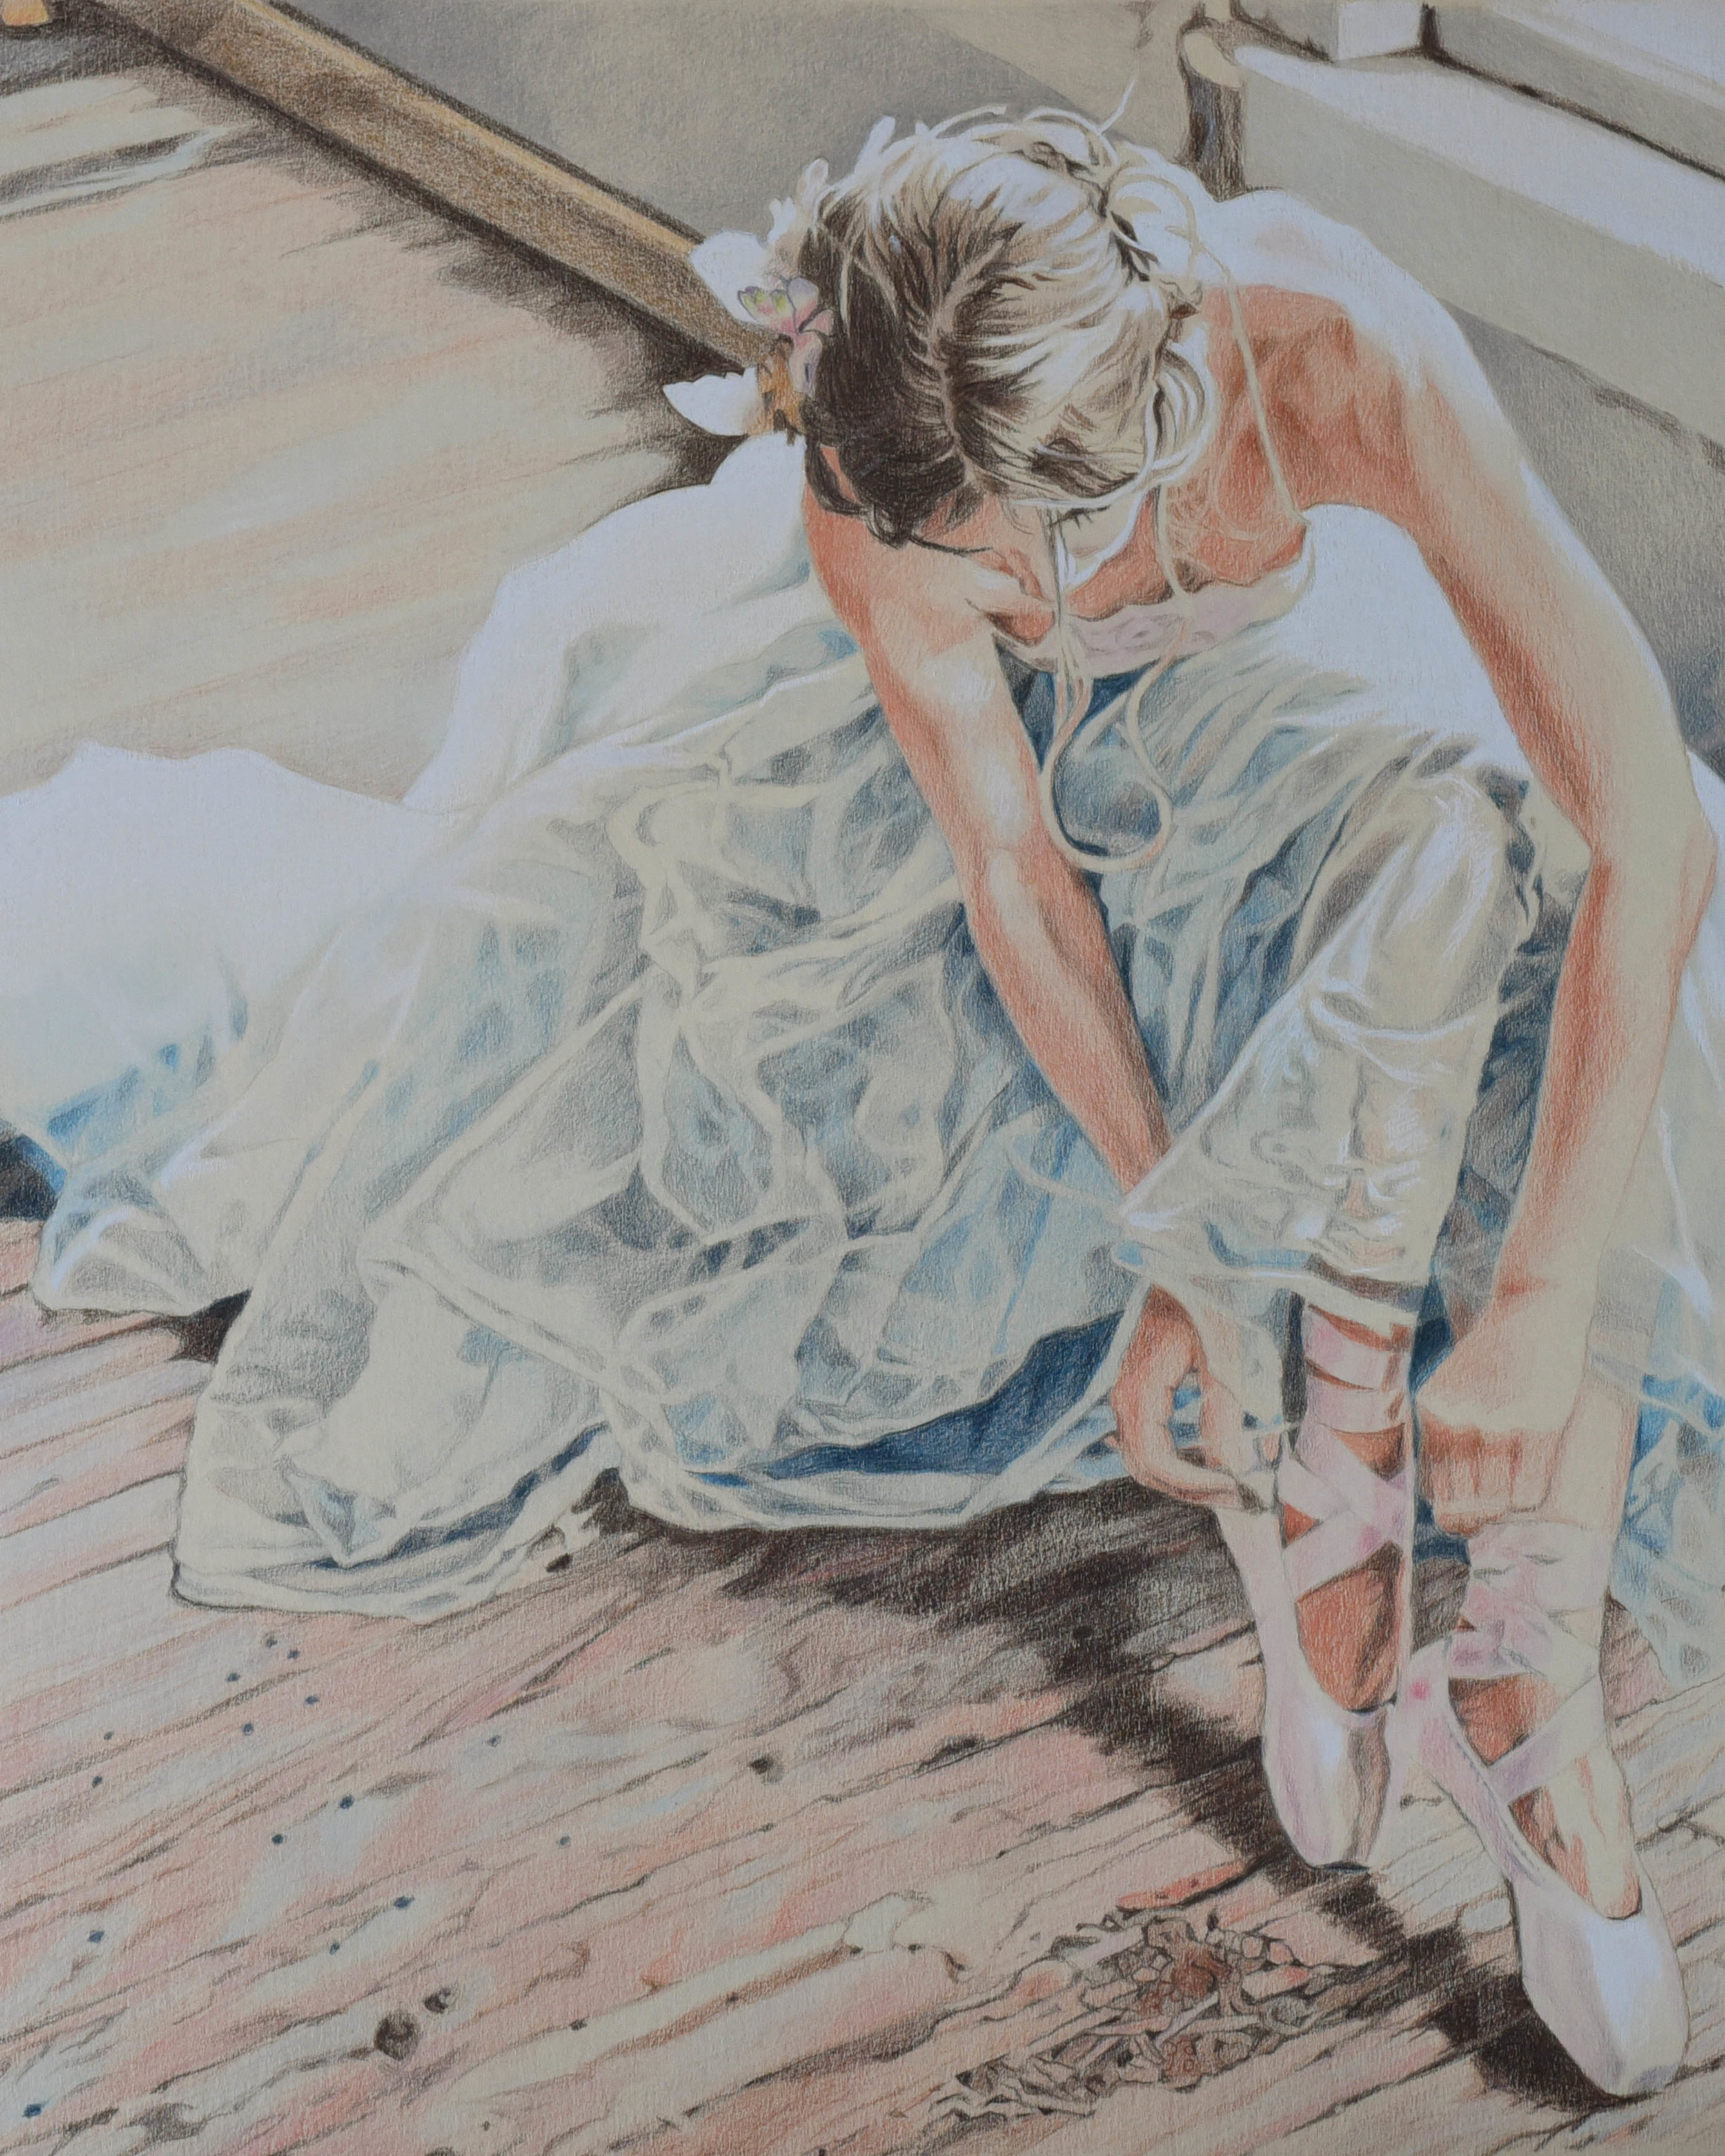 Colour pencil portrait of a ballerina in pointe shoes wearing a tutu.